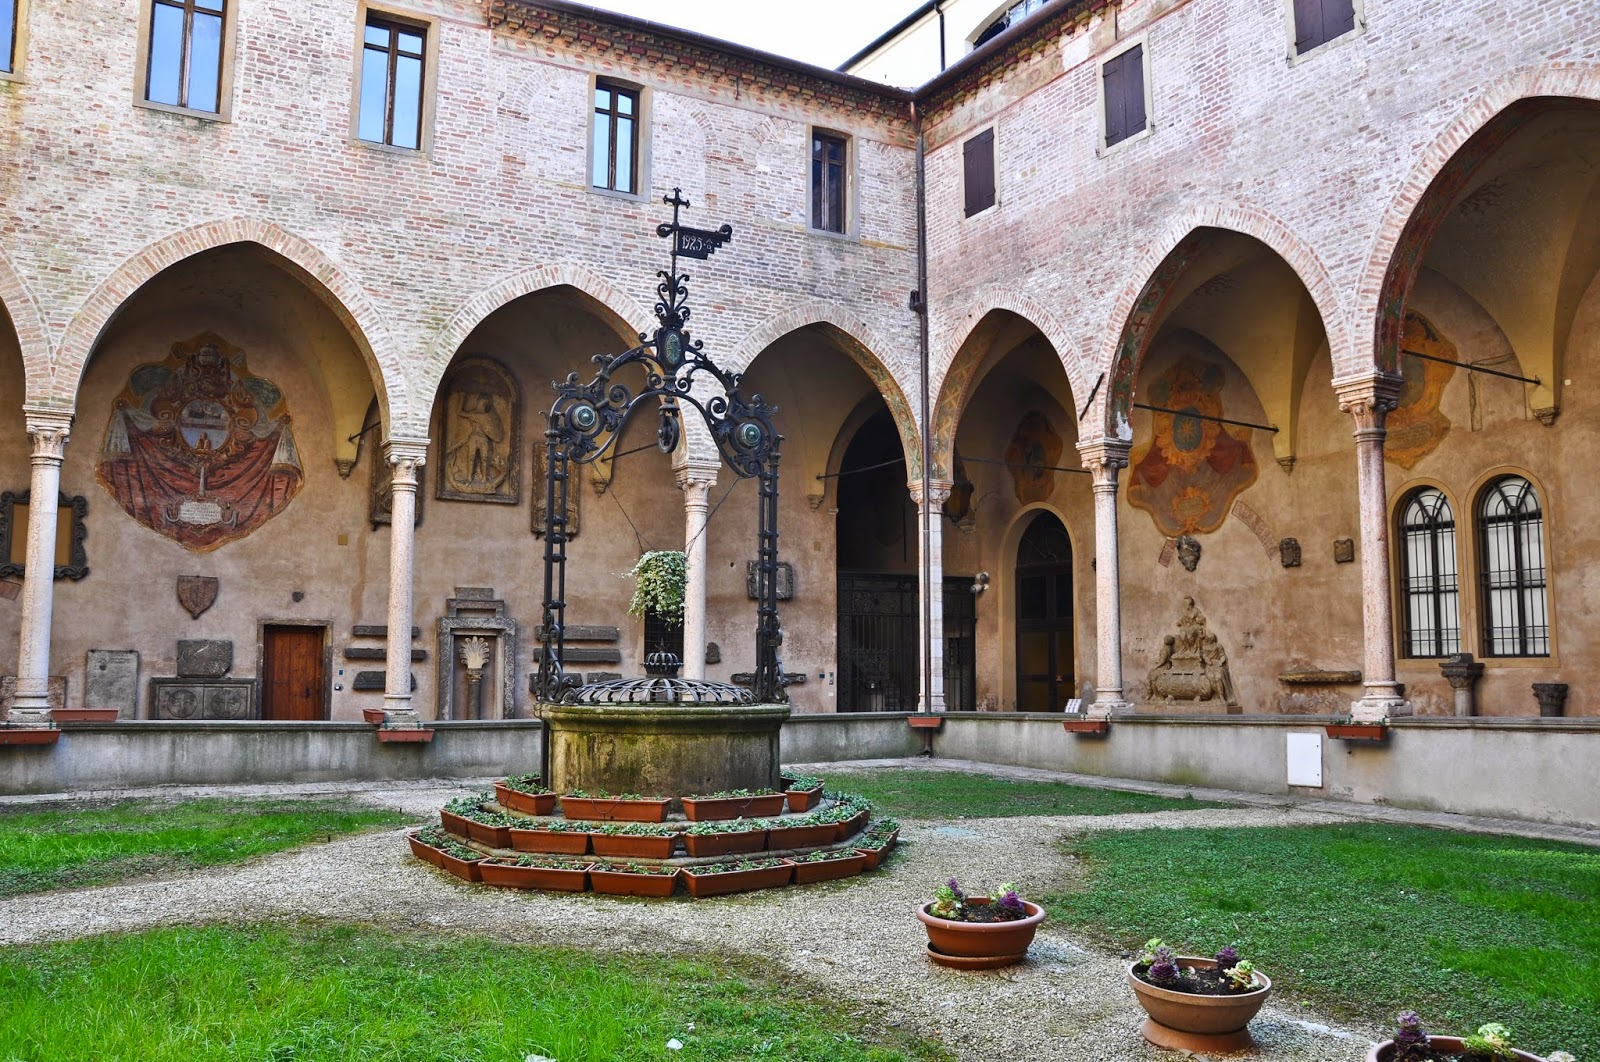 The cloisters of St. Anthony's Basilica in Padua-2